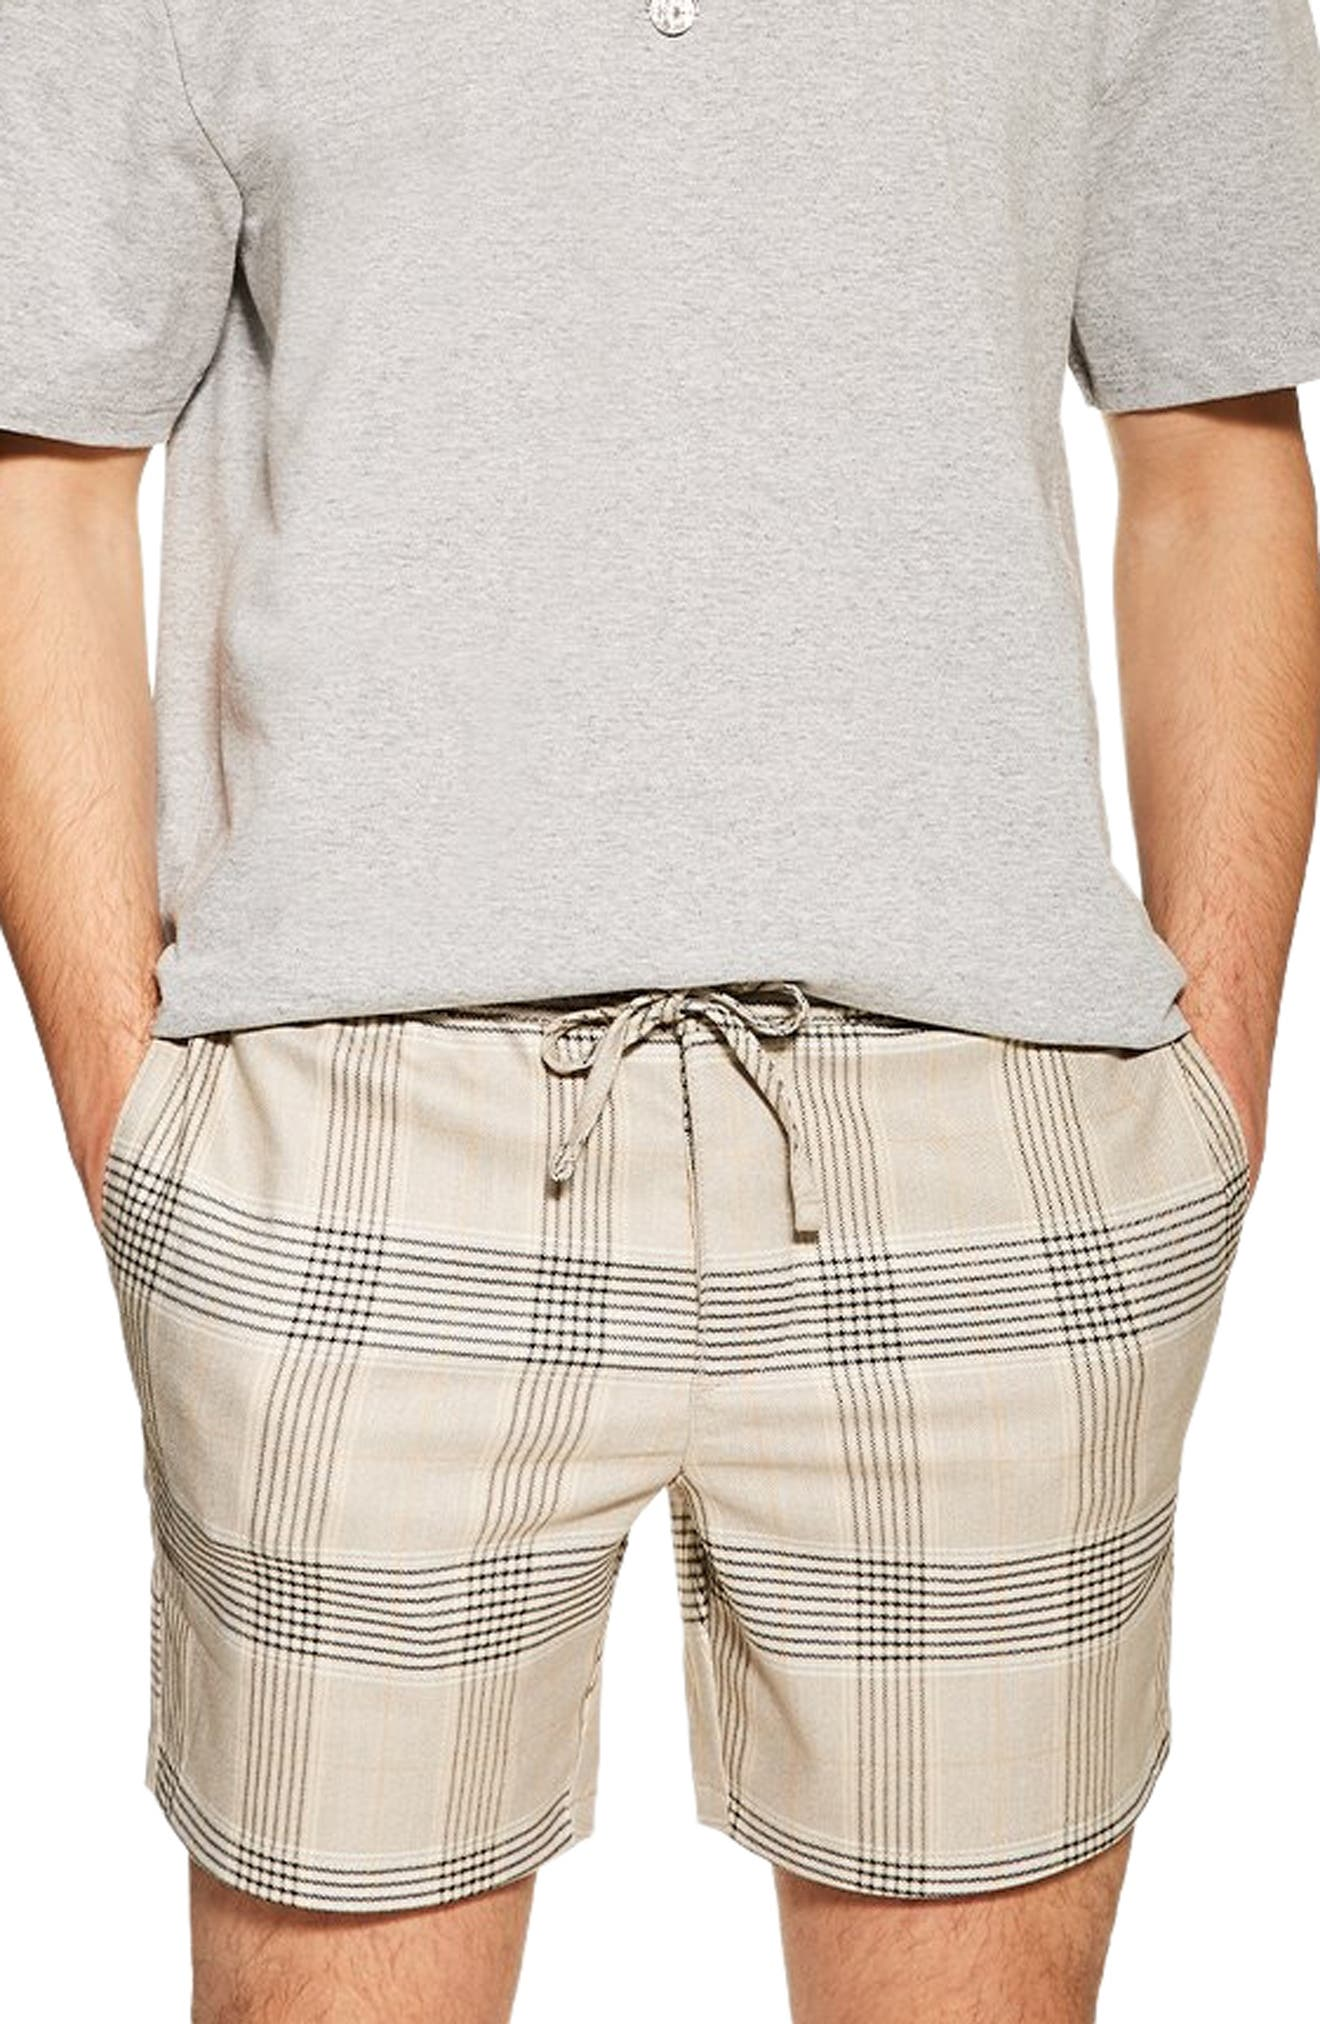 TOPMAN Check Print Shorts, Main, color, STONE